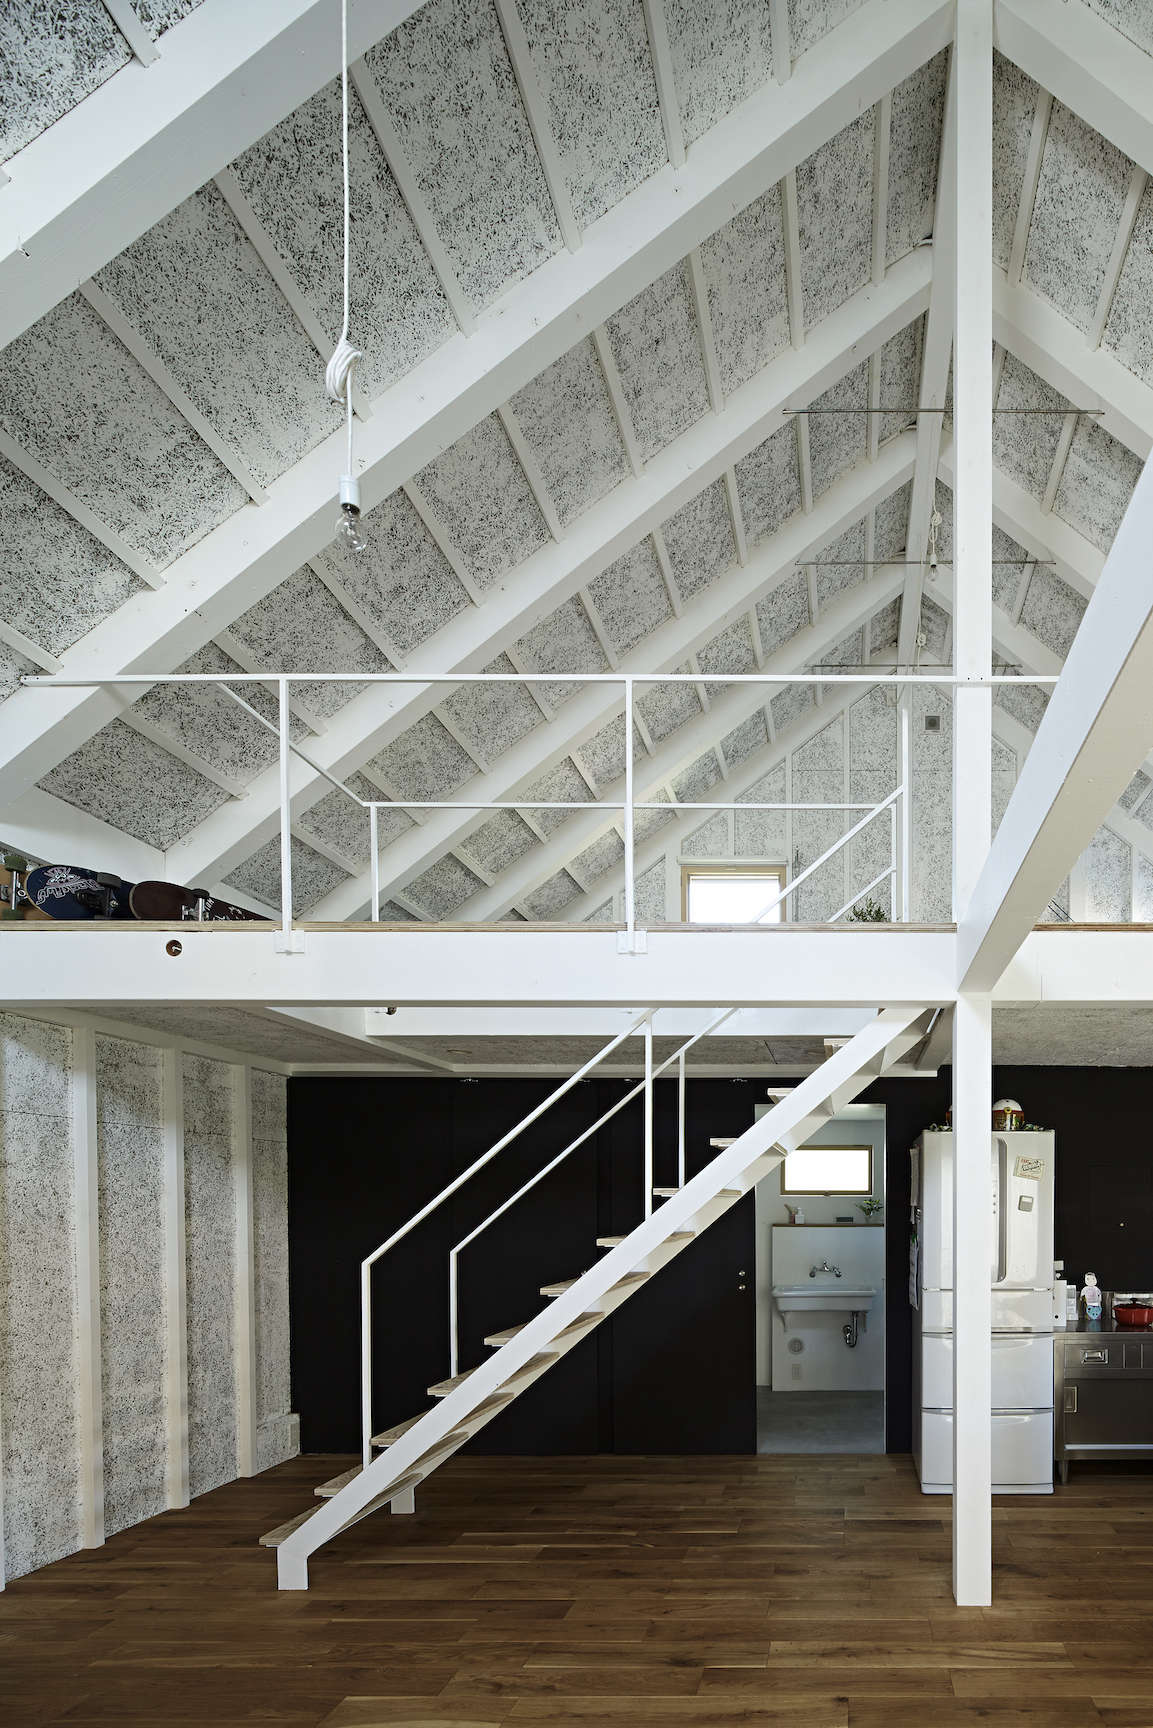 sabi, a surfers' house in chiba, japan, designed by no. 555 architects. the tex 13